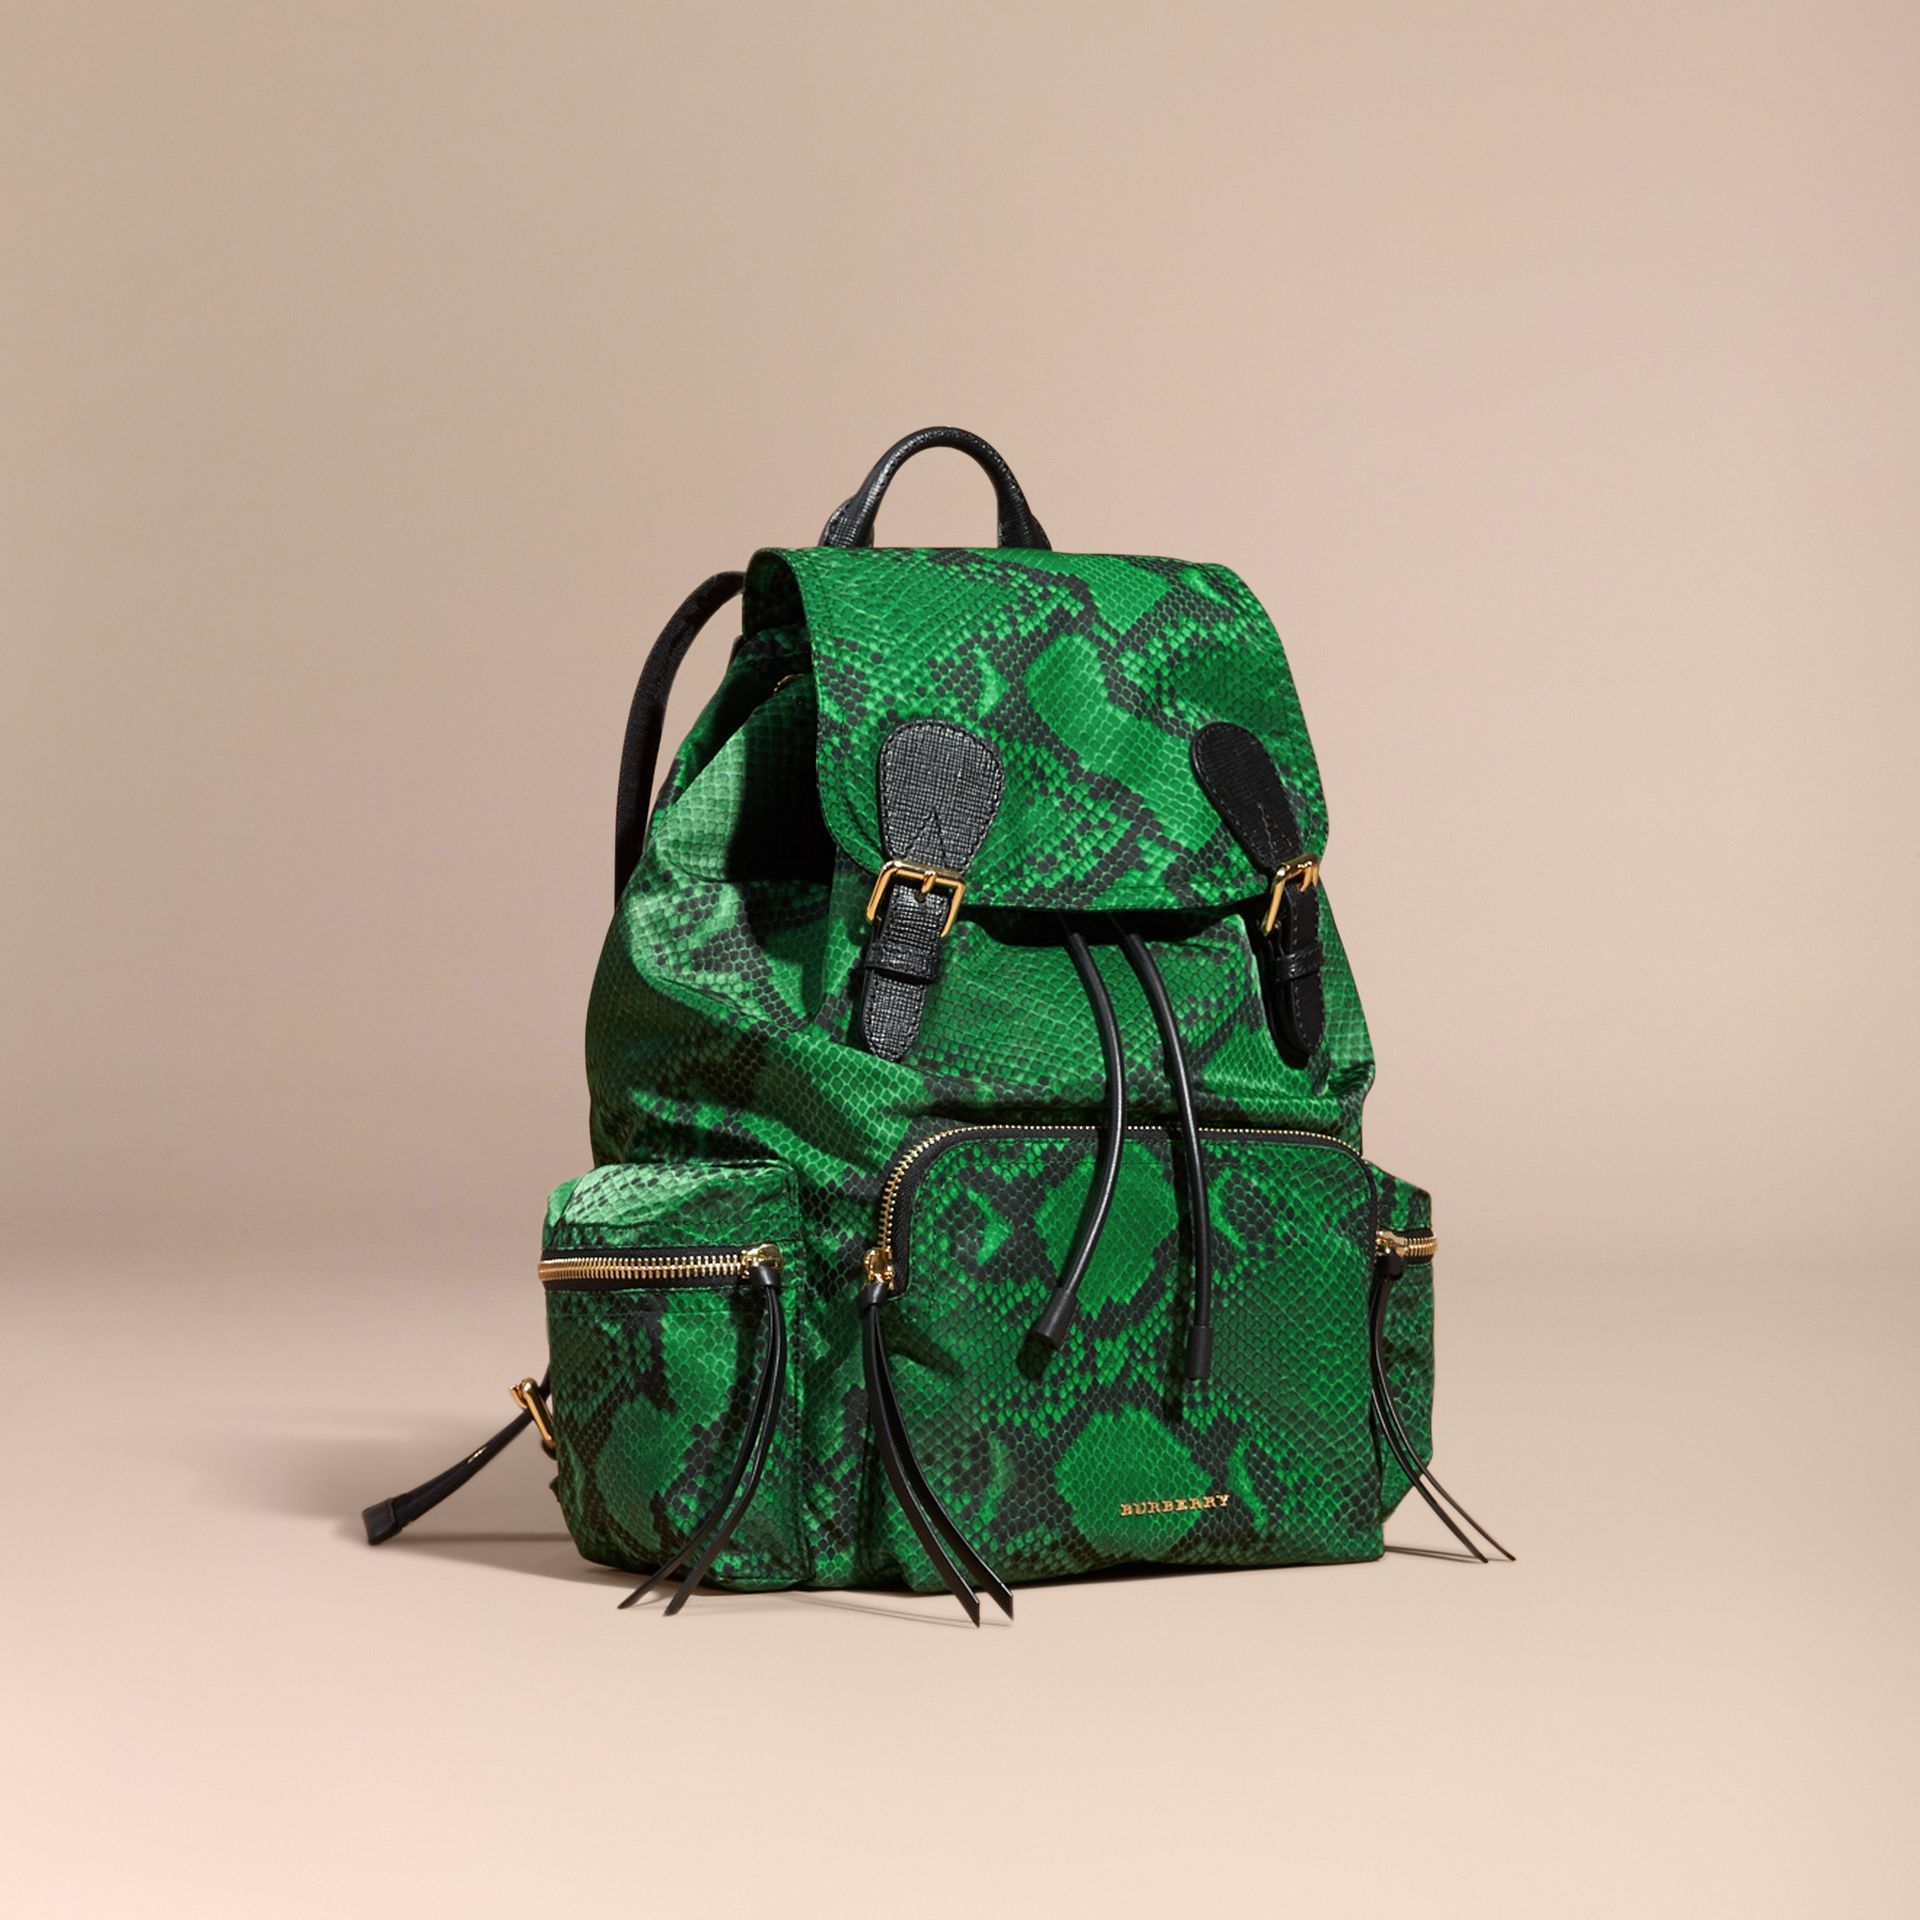 Grand sac The Rucksack en nylon à imprimé python et cuir Vert - photo de la galerie 1